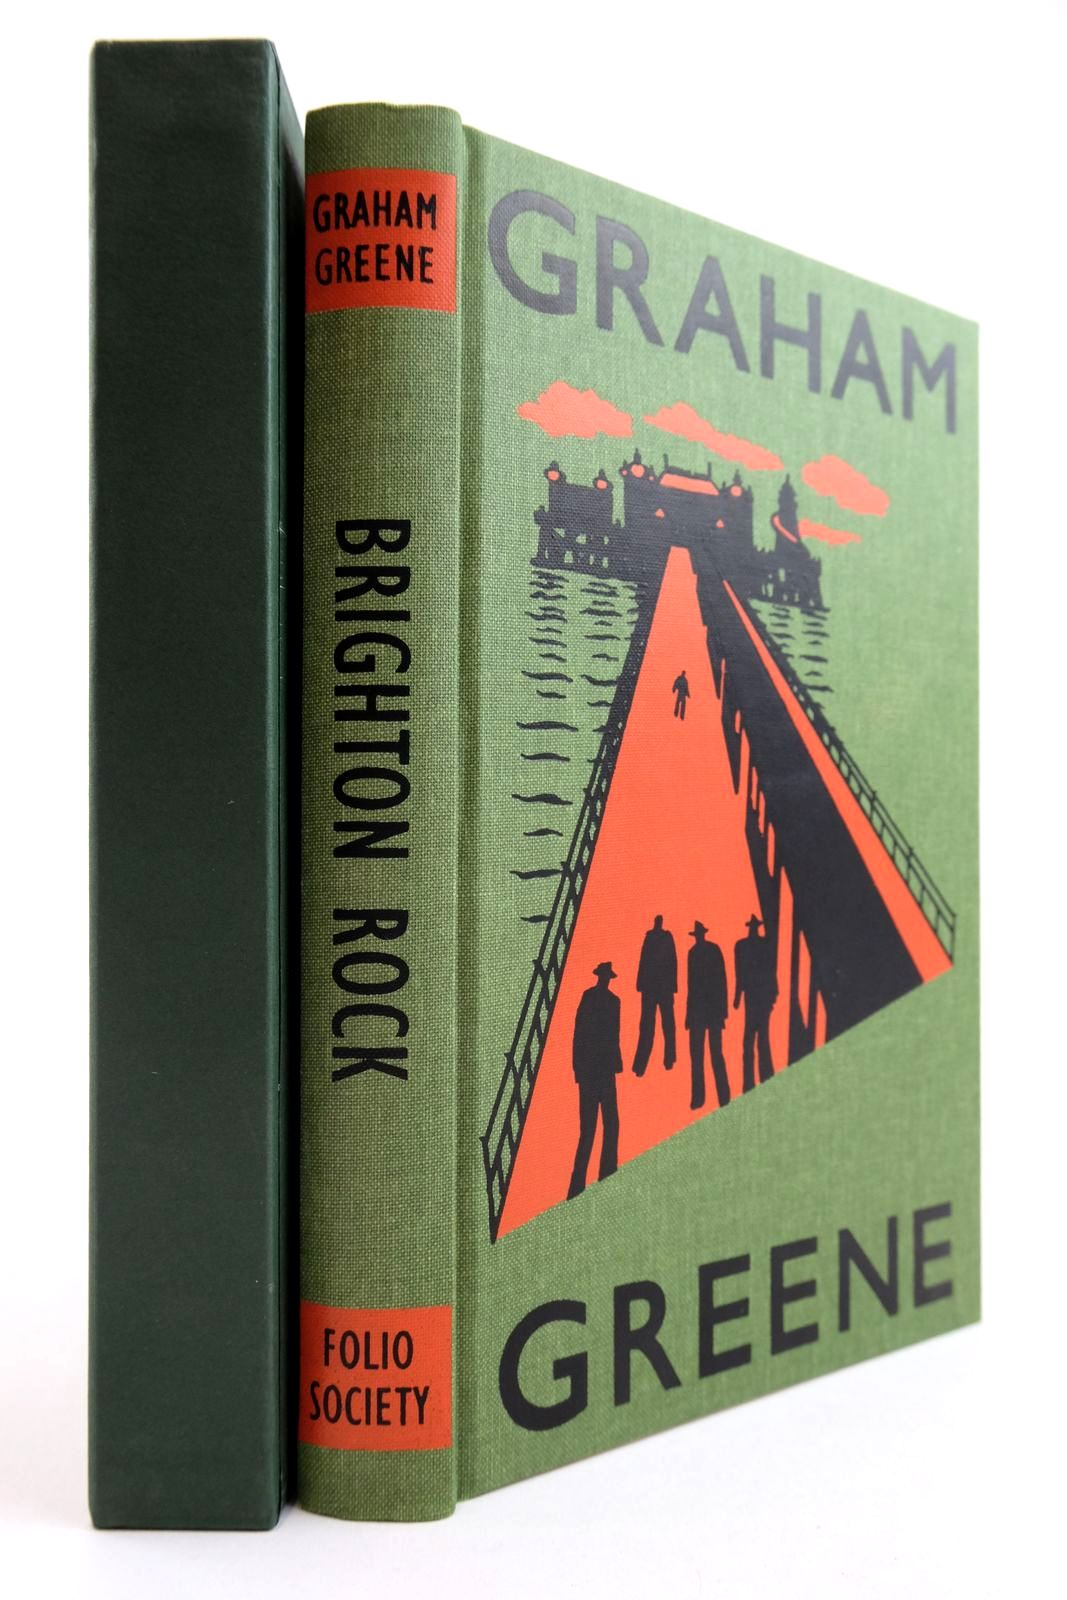 Photo of BRIGHTON ROCK written by Greene, Graham illustrated by Grandfield, Geoff published by Folio Society (STOCK CODE: 2134176)  for sale by Stella & Rose's Books